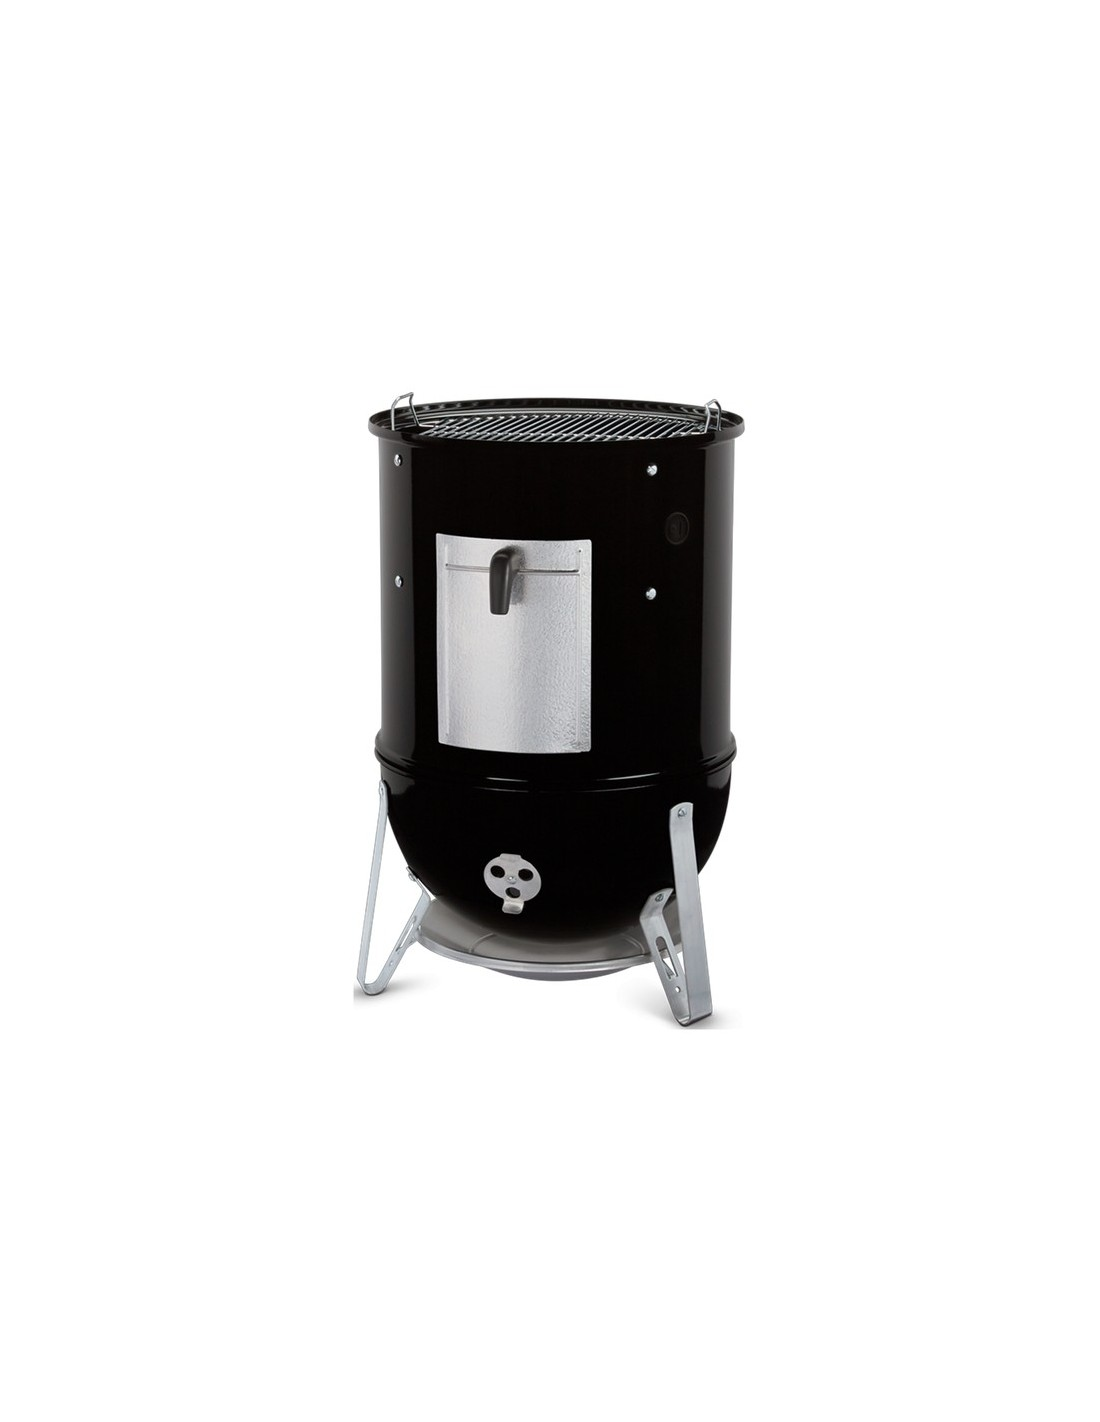 fumoir smokey montain cooker 47cm noir maill weber. Black Bedroom Furniture Sets. Home Design Ideas